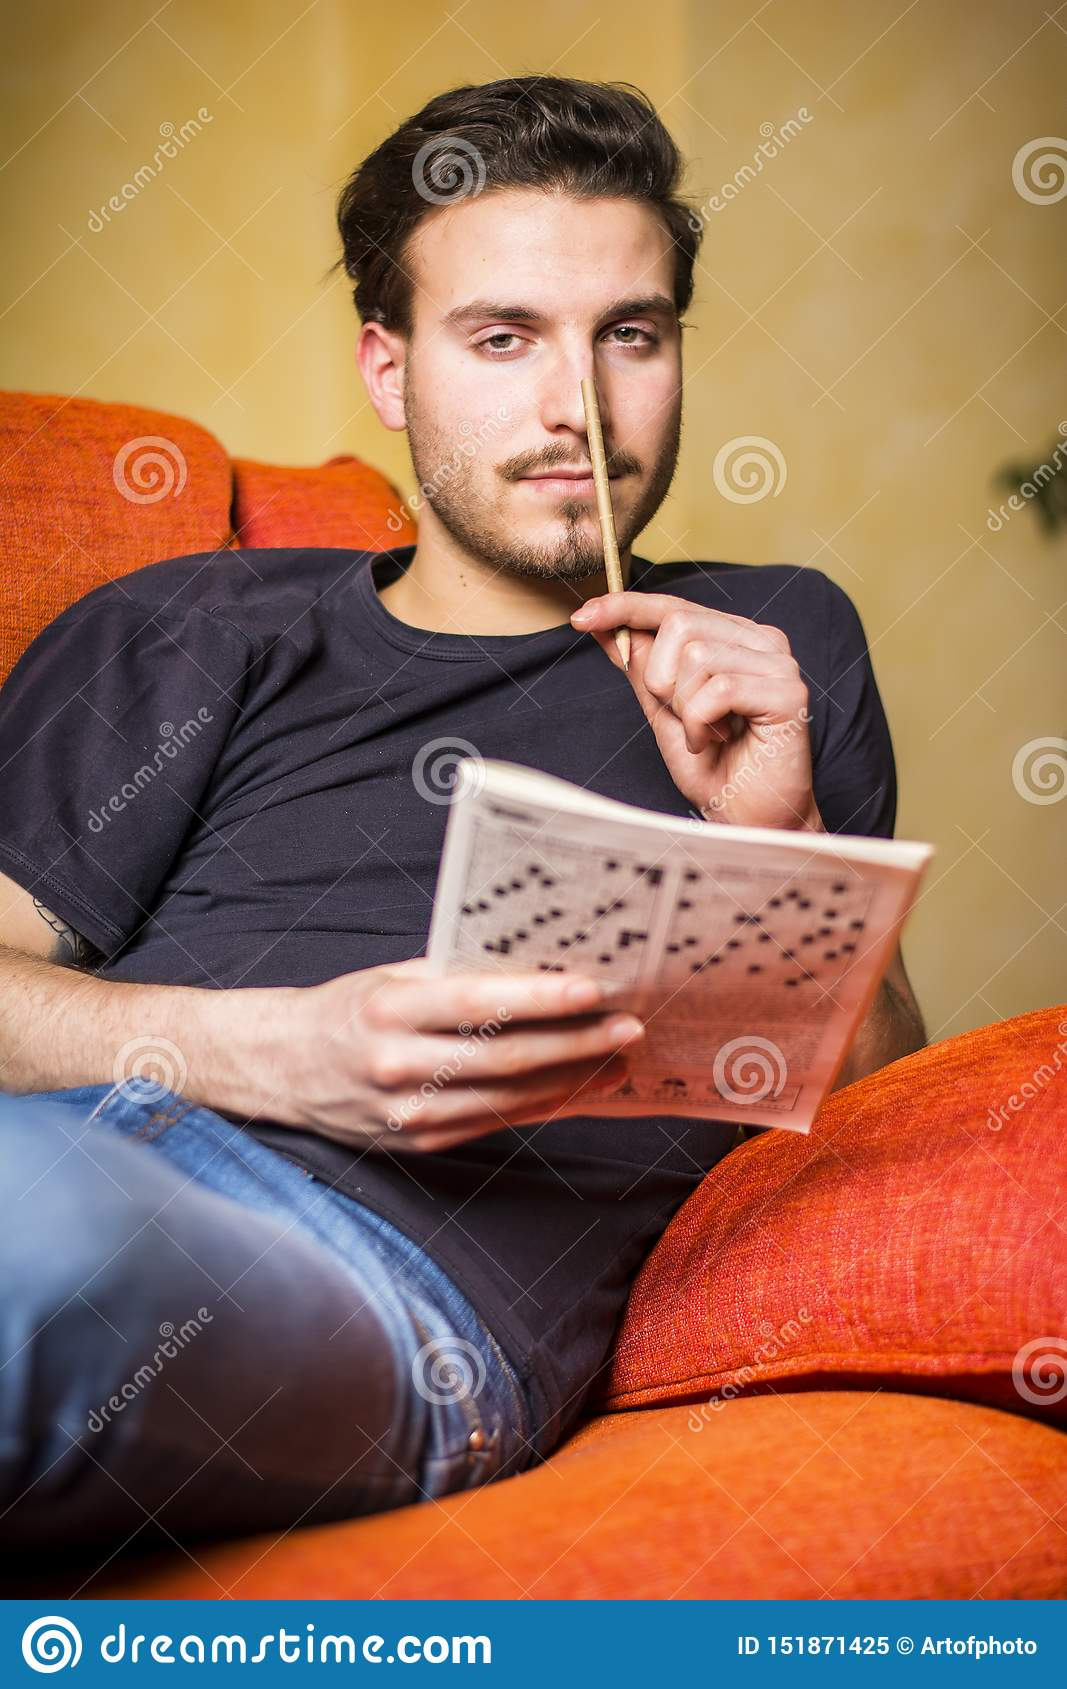 Young Man Sitting Doing A Crossword Puzzle Stock Image Image Of Living Amusement 151871425